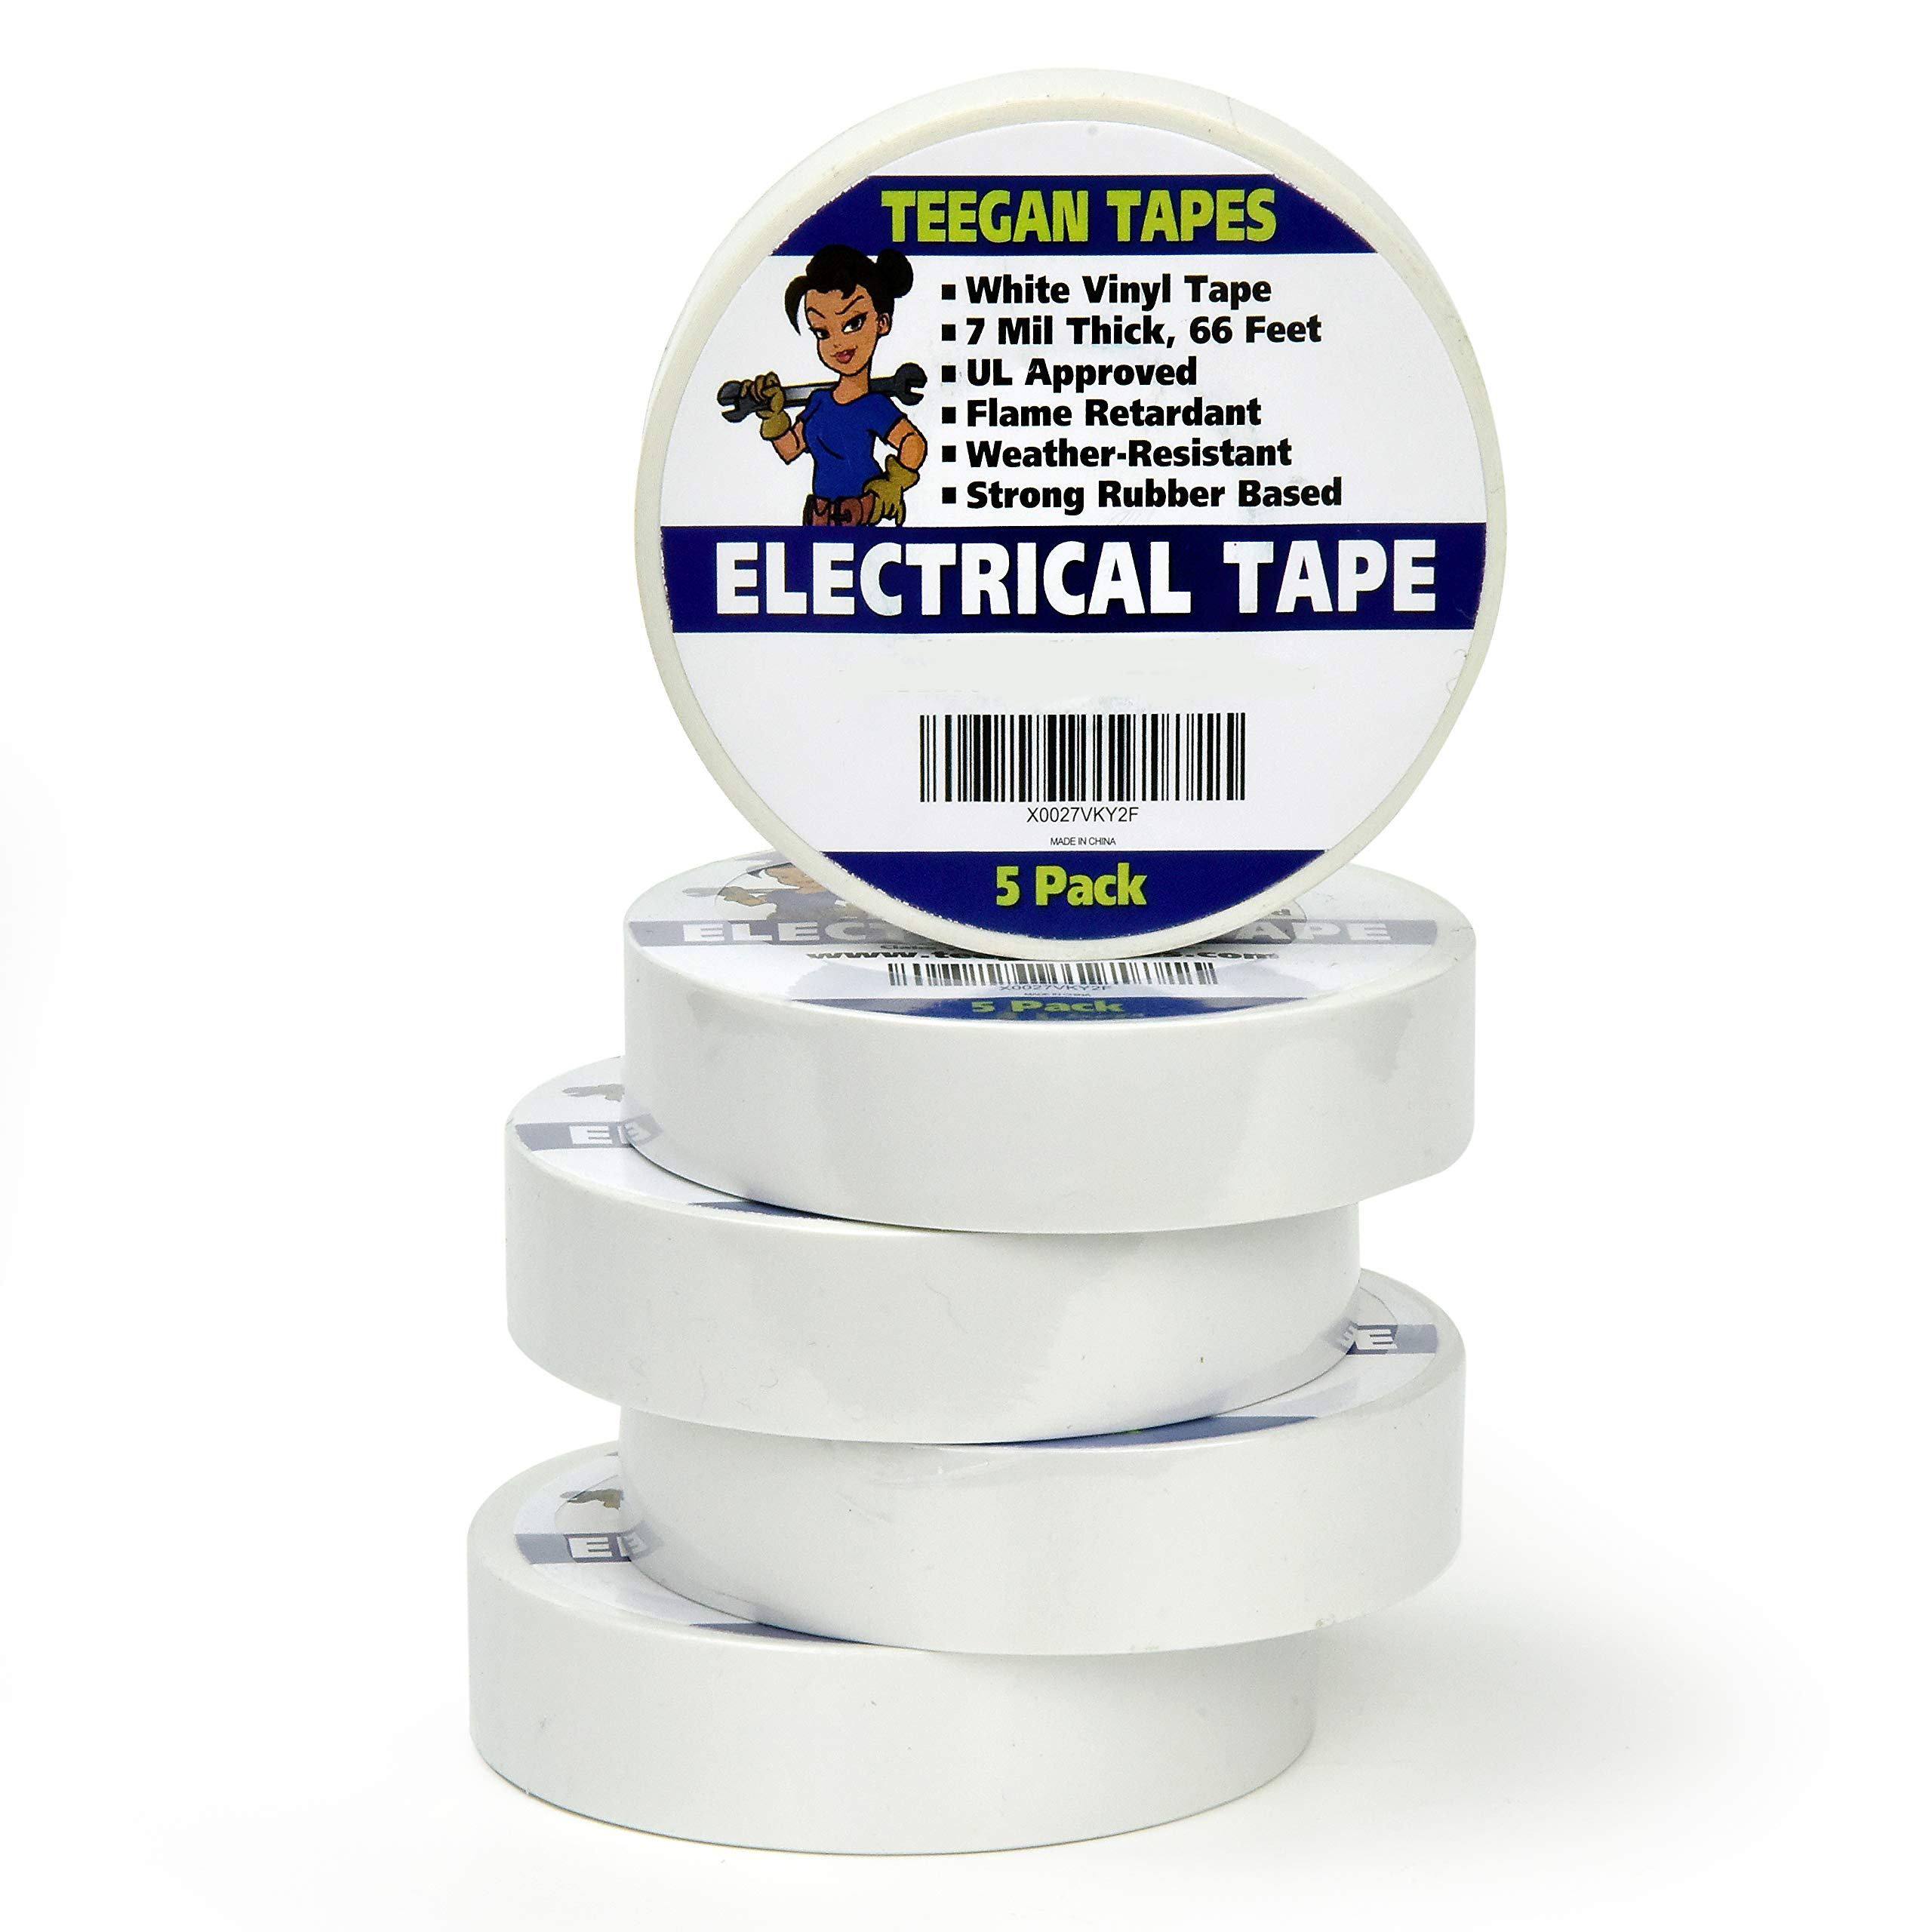 White Electrical Tape - Vinyl Electric Tape (5 Pack) | 7 mil Thick Vinyl Tape 3/4 Inch Wide 66 Foot Long Roll | Strong Rubber Base | Flame Retardant, Temperature & Weather Resistant (White) by Gaffer Power